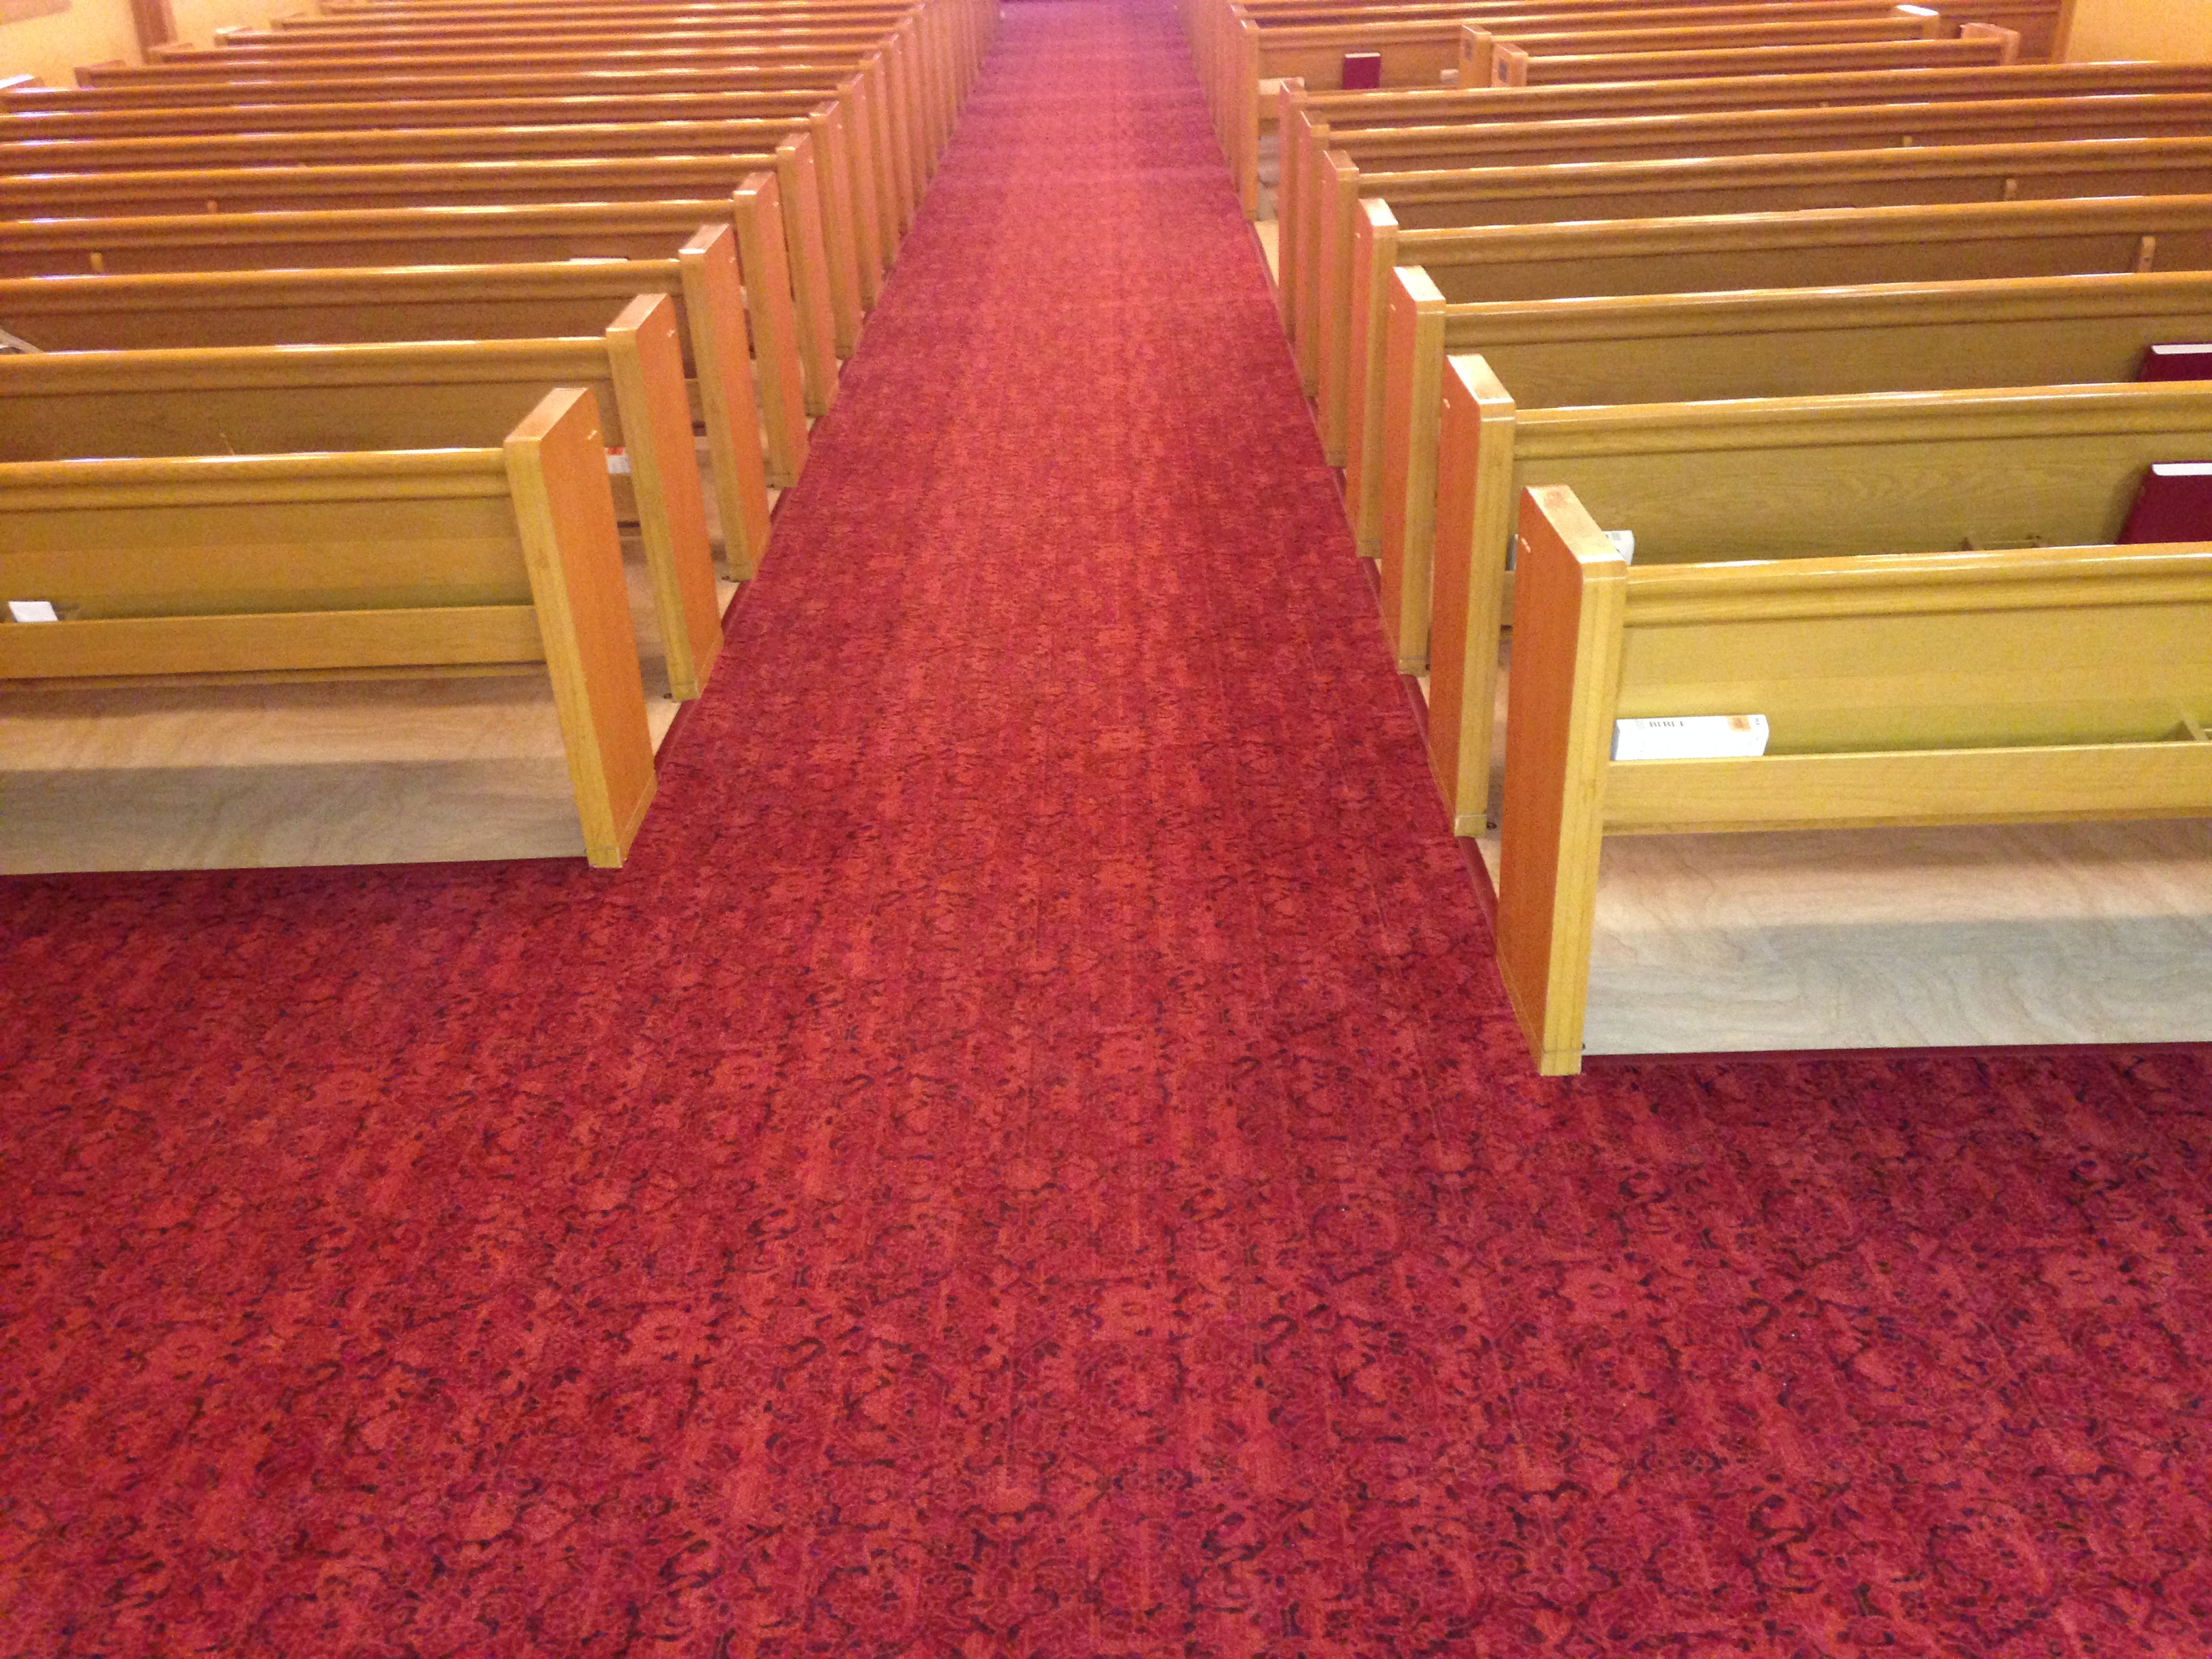 Church Carpet Designs Joy Studio Design Gallery Best